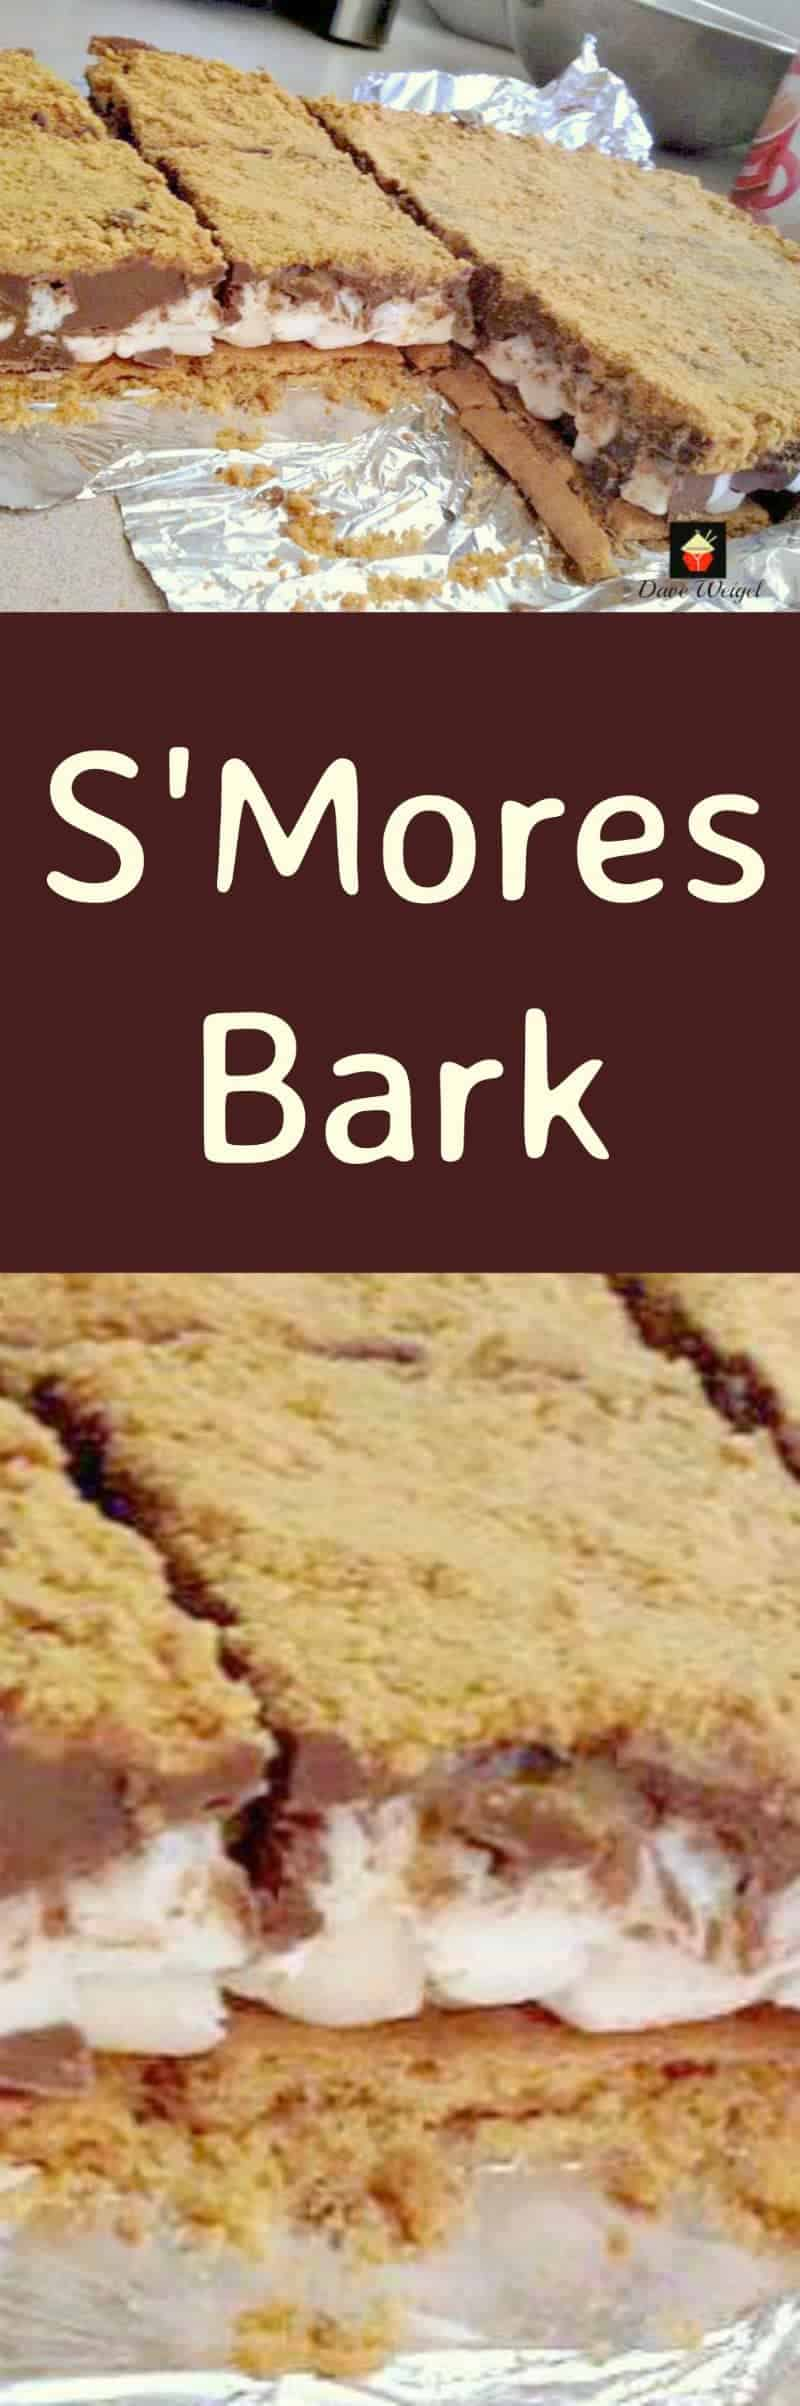 Smore's Bark!  A very easy recipe, and great for parties and gatherings. Perfect if you need to make ahead.